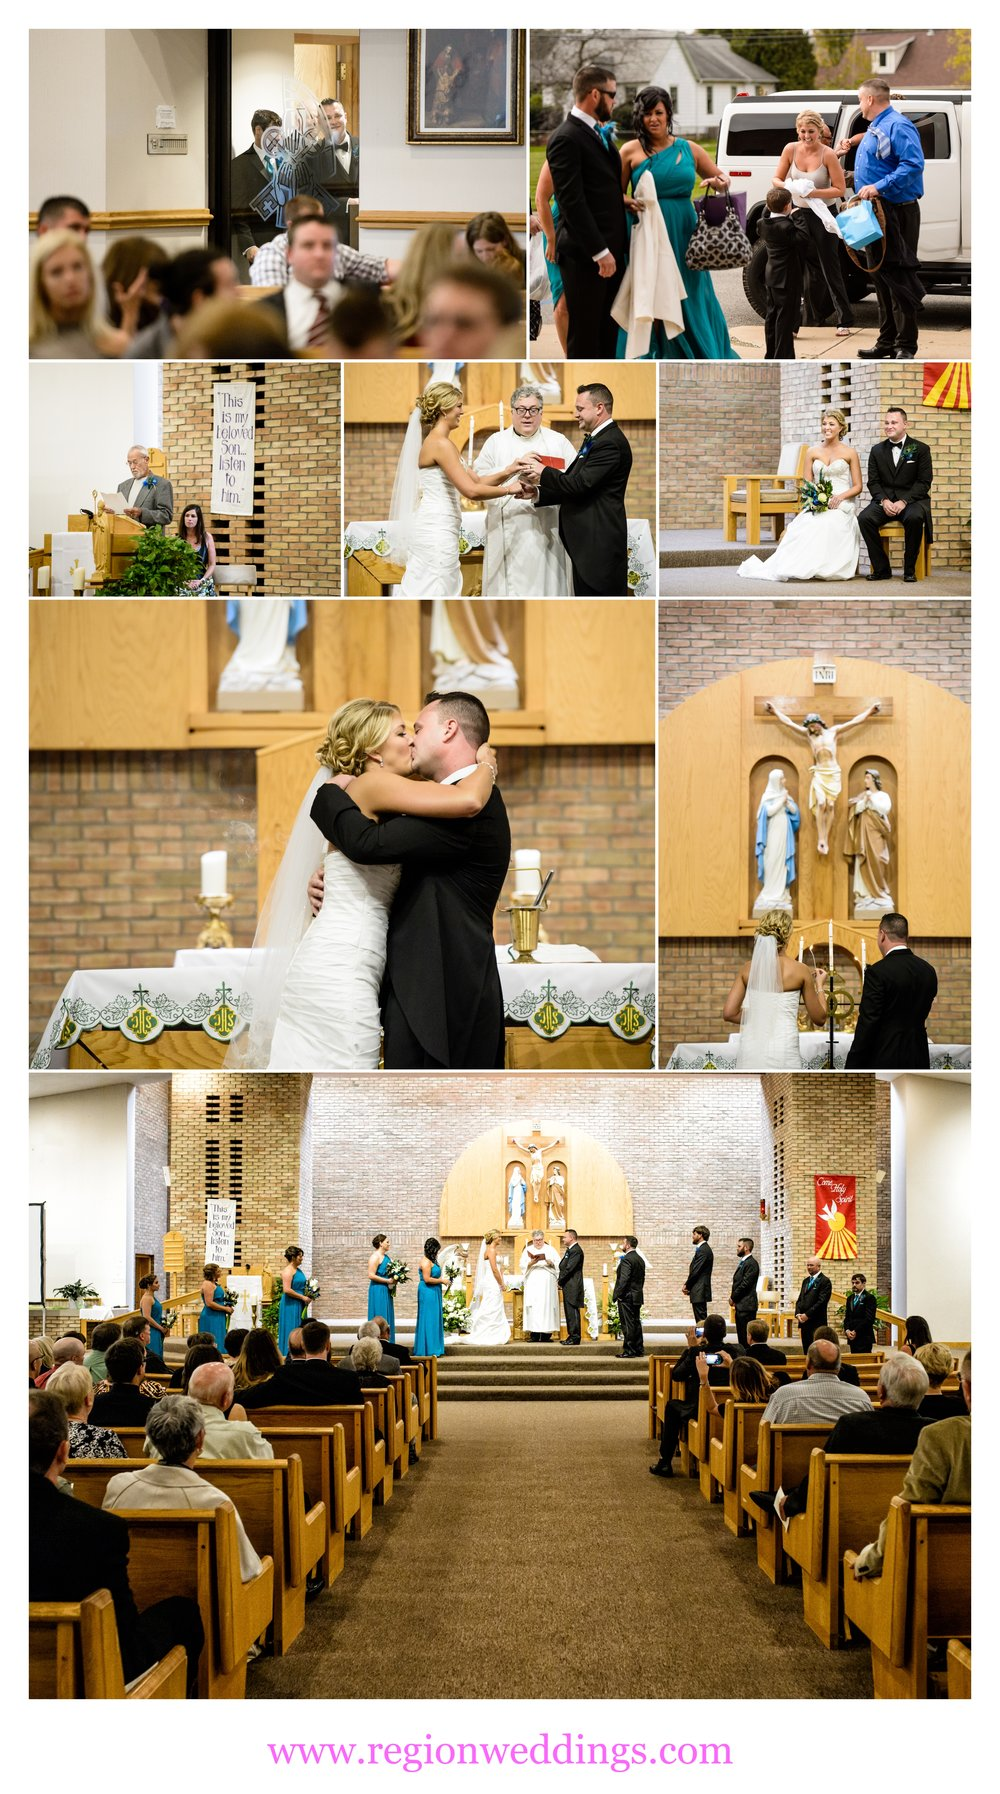 Wedding ceremony at St. Patrick Catholic Church in Chesterton, Indiana.